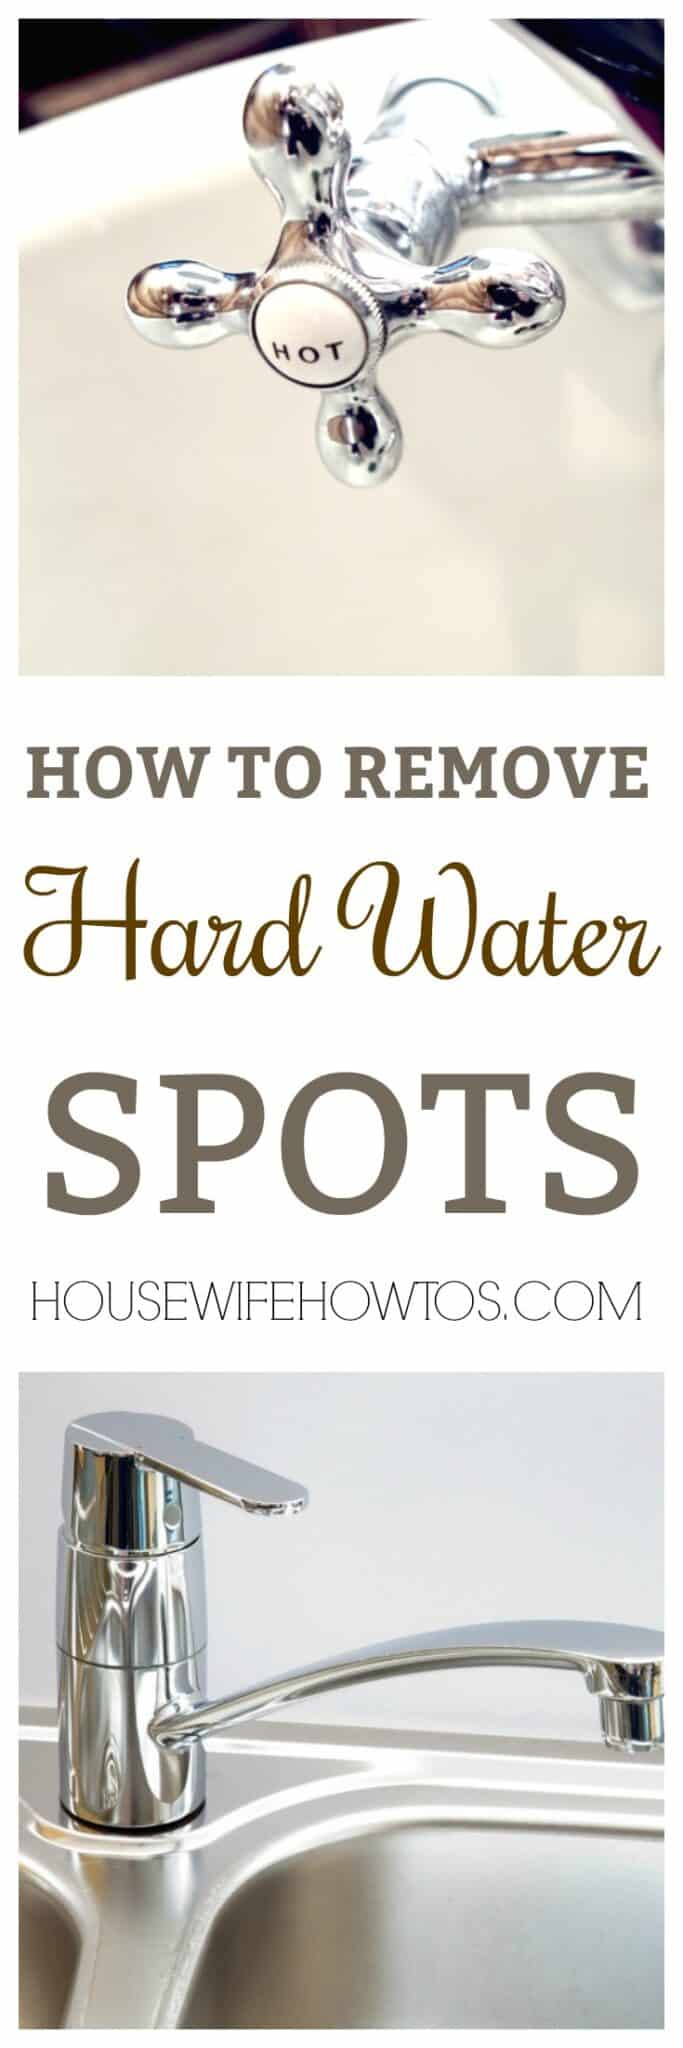 How To Remove Hard Water Spots • Housewife How-Tos®